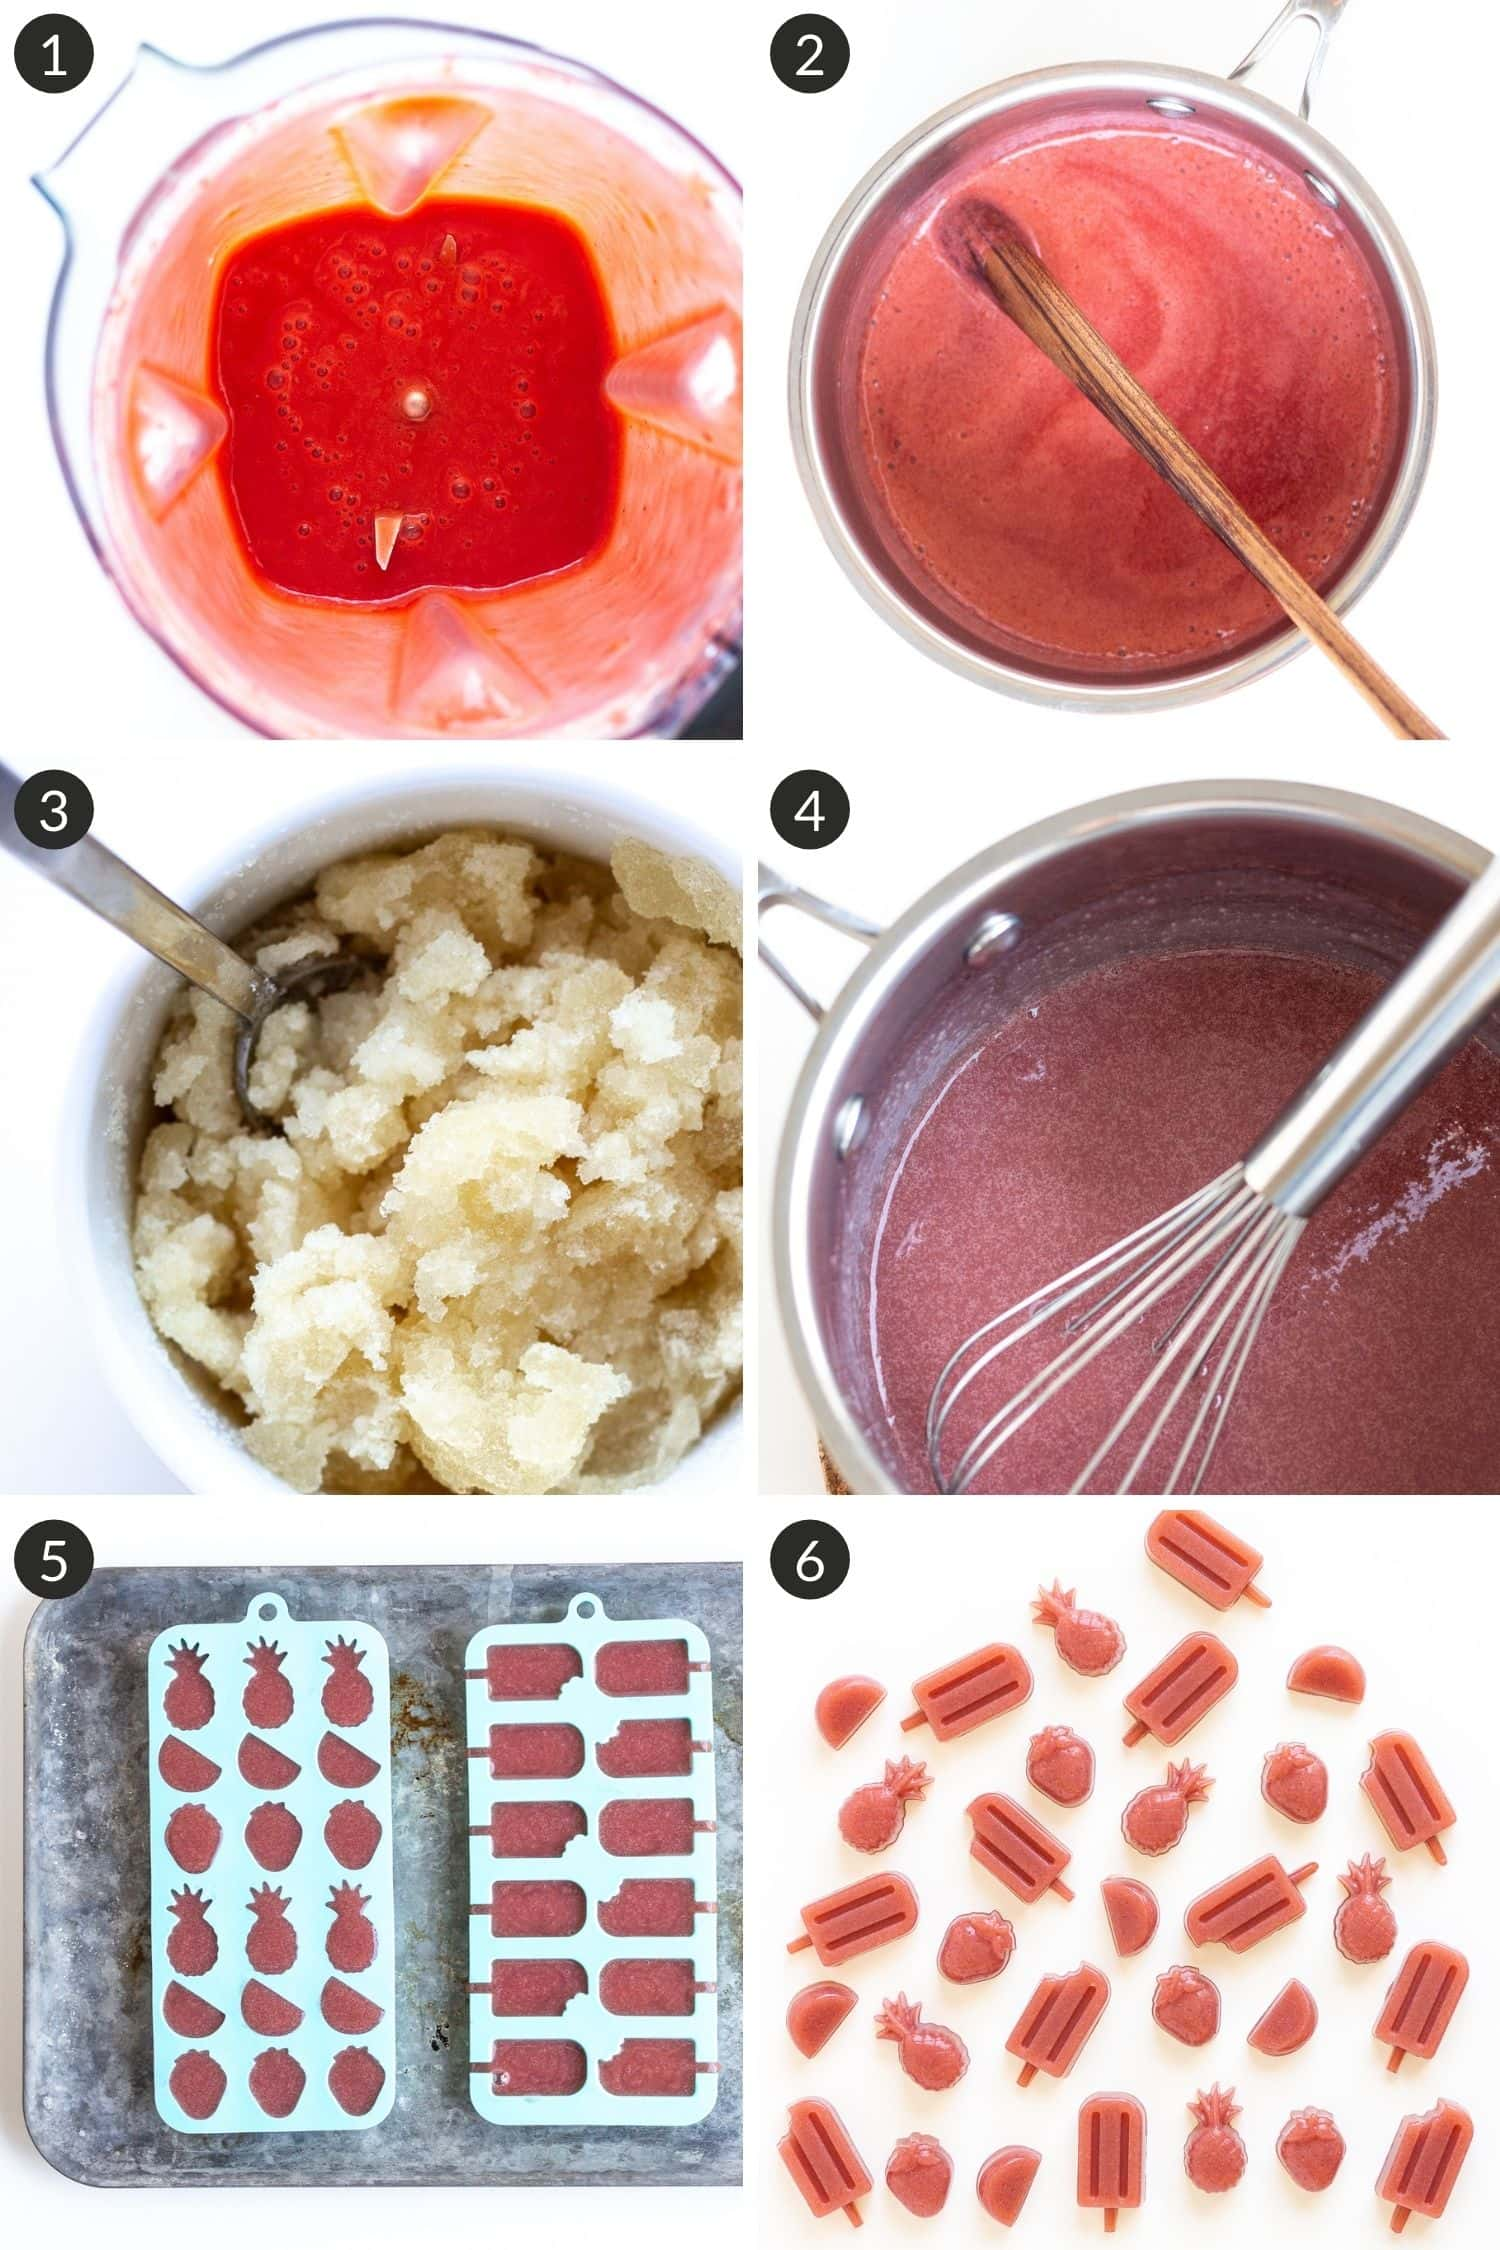 Collage of photos showing how to make healthy strawberry gummies.